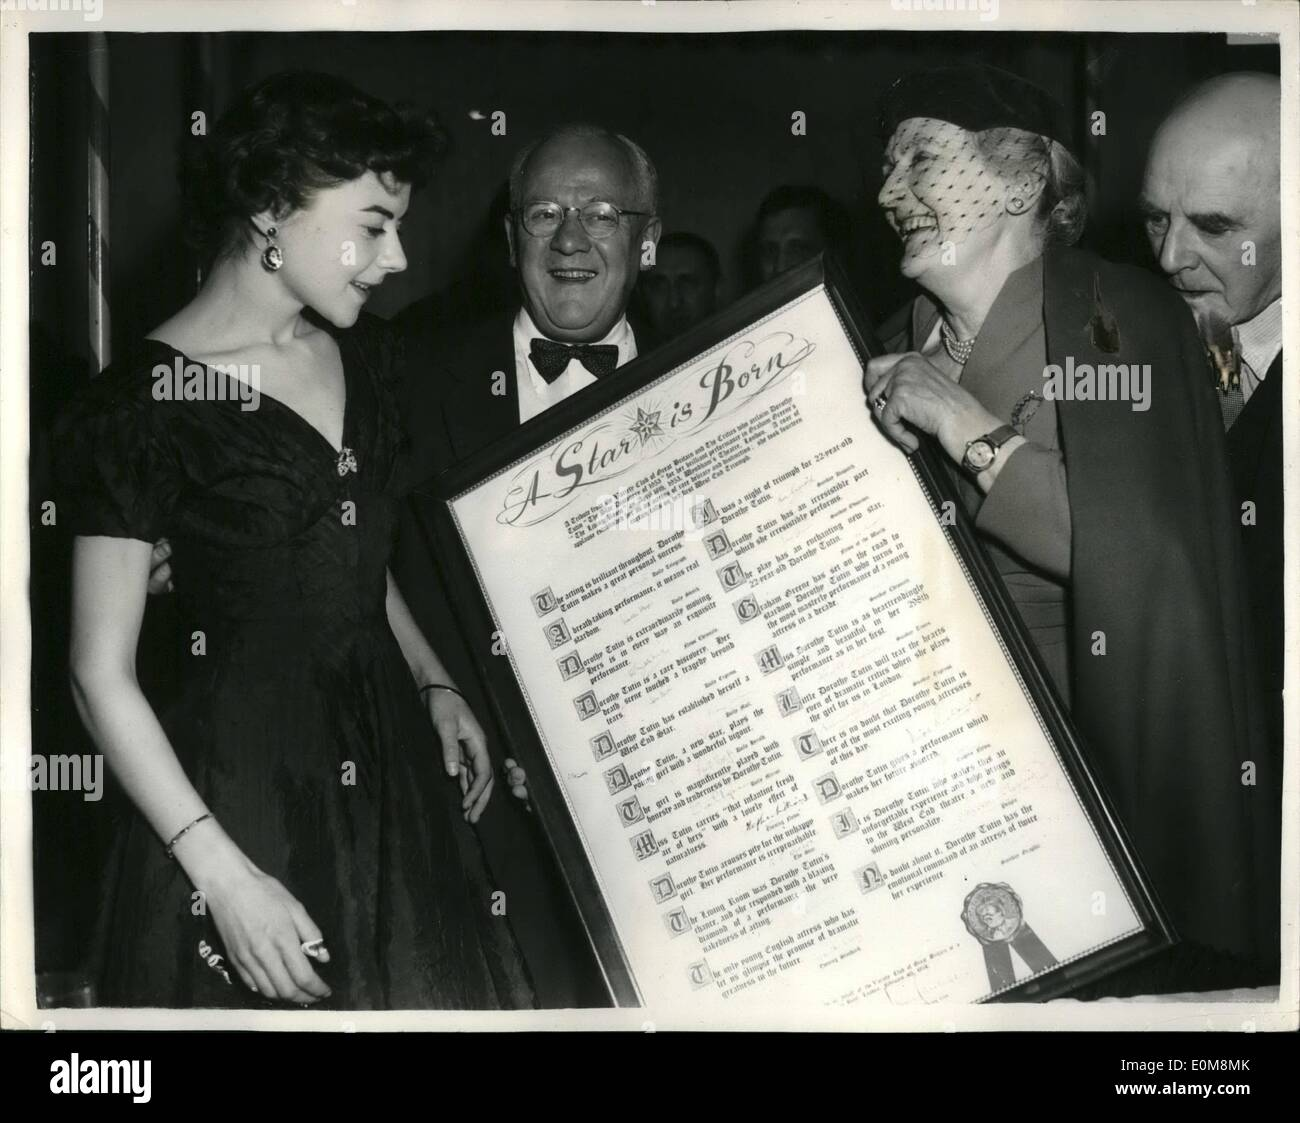 Feb. 02, 1954 - ''Actress of the Year'' and ''Showman of year'' honoured at variety club Luncheon: Miss Dorothy Tutin, whose performance in Graham Greene's ''The living Room'' made her the talk of the entertainment world, and Mr. Jack Hylton, the empressario, were honoured by the Variety Club as the ''Actress of the Tear'' and ''The Showman of the Year'' respectively at a special testimonial luncheon held at the Savoy Hotel today - Stock Image